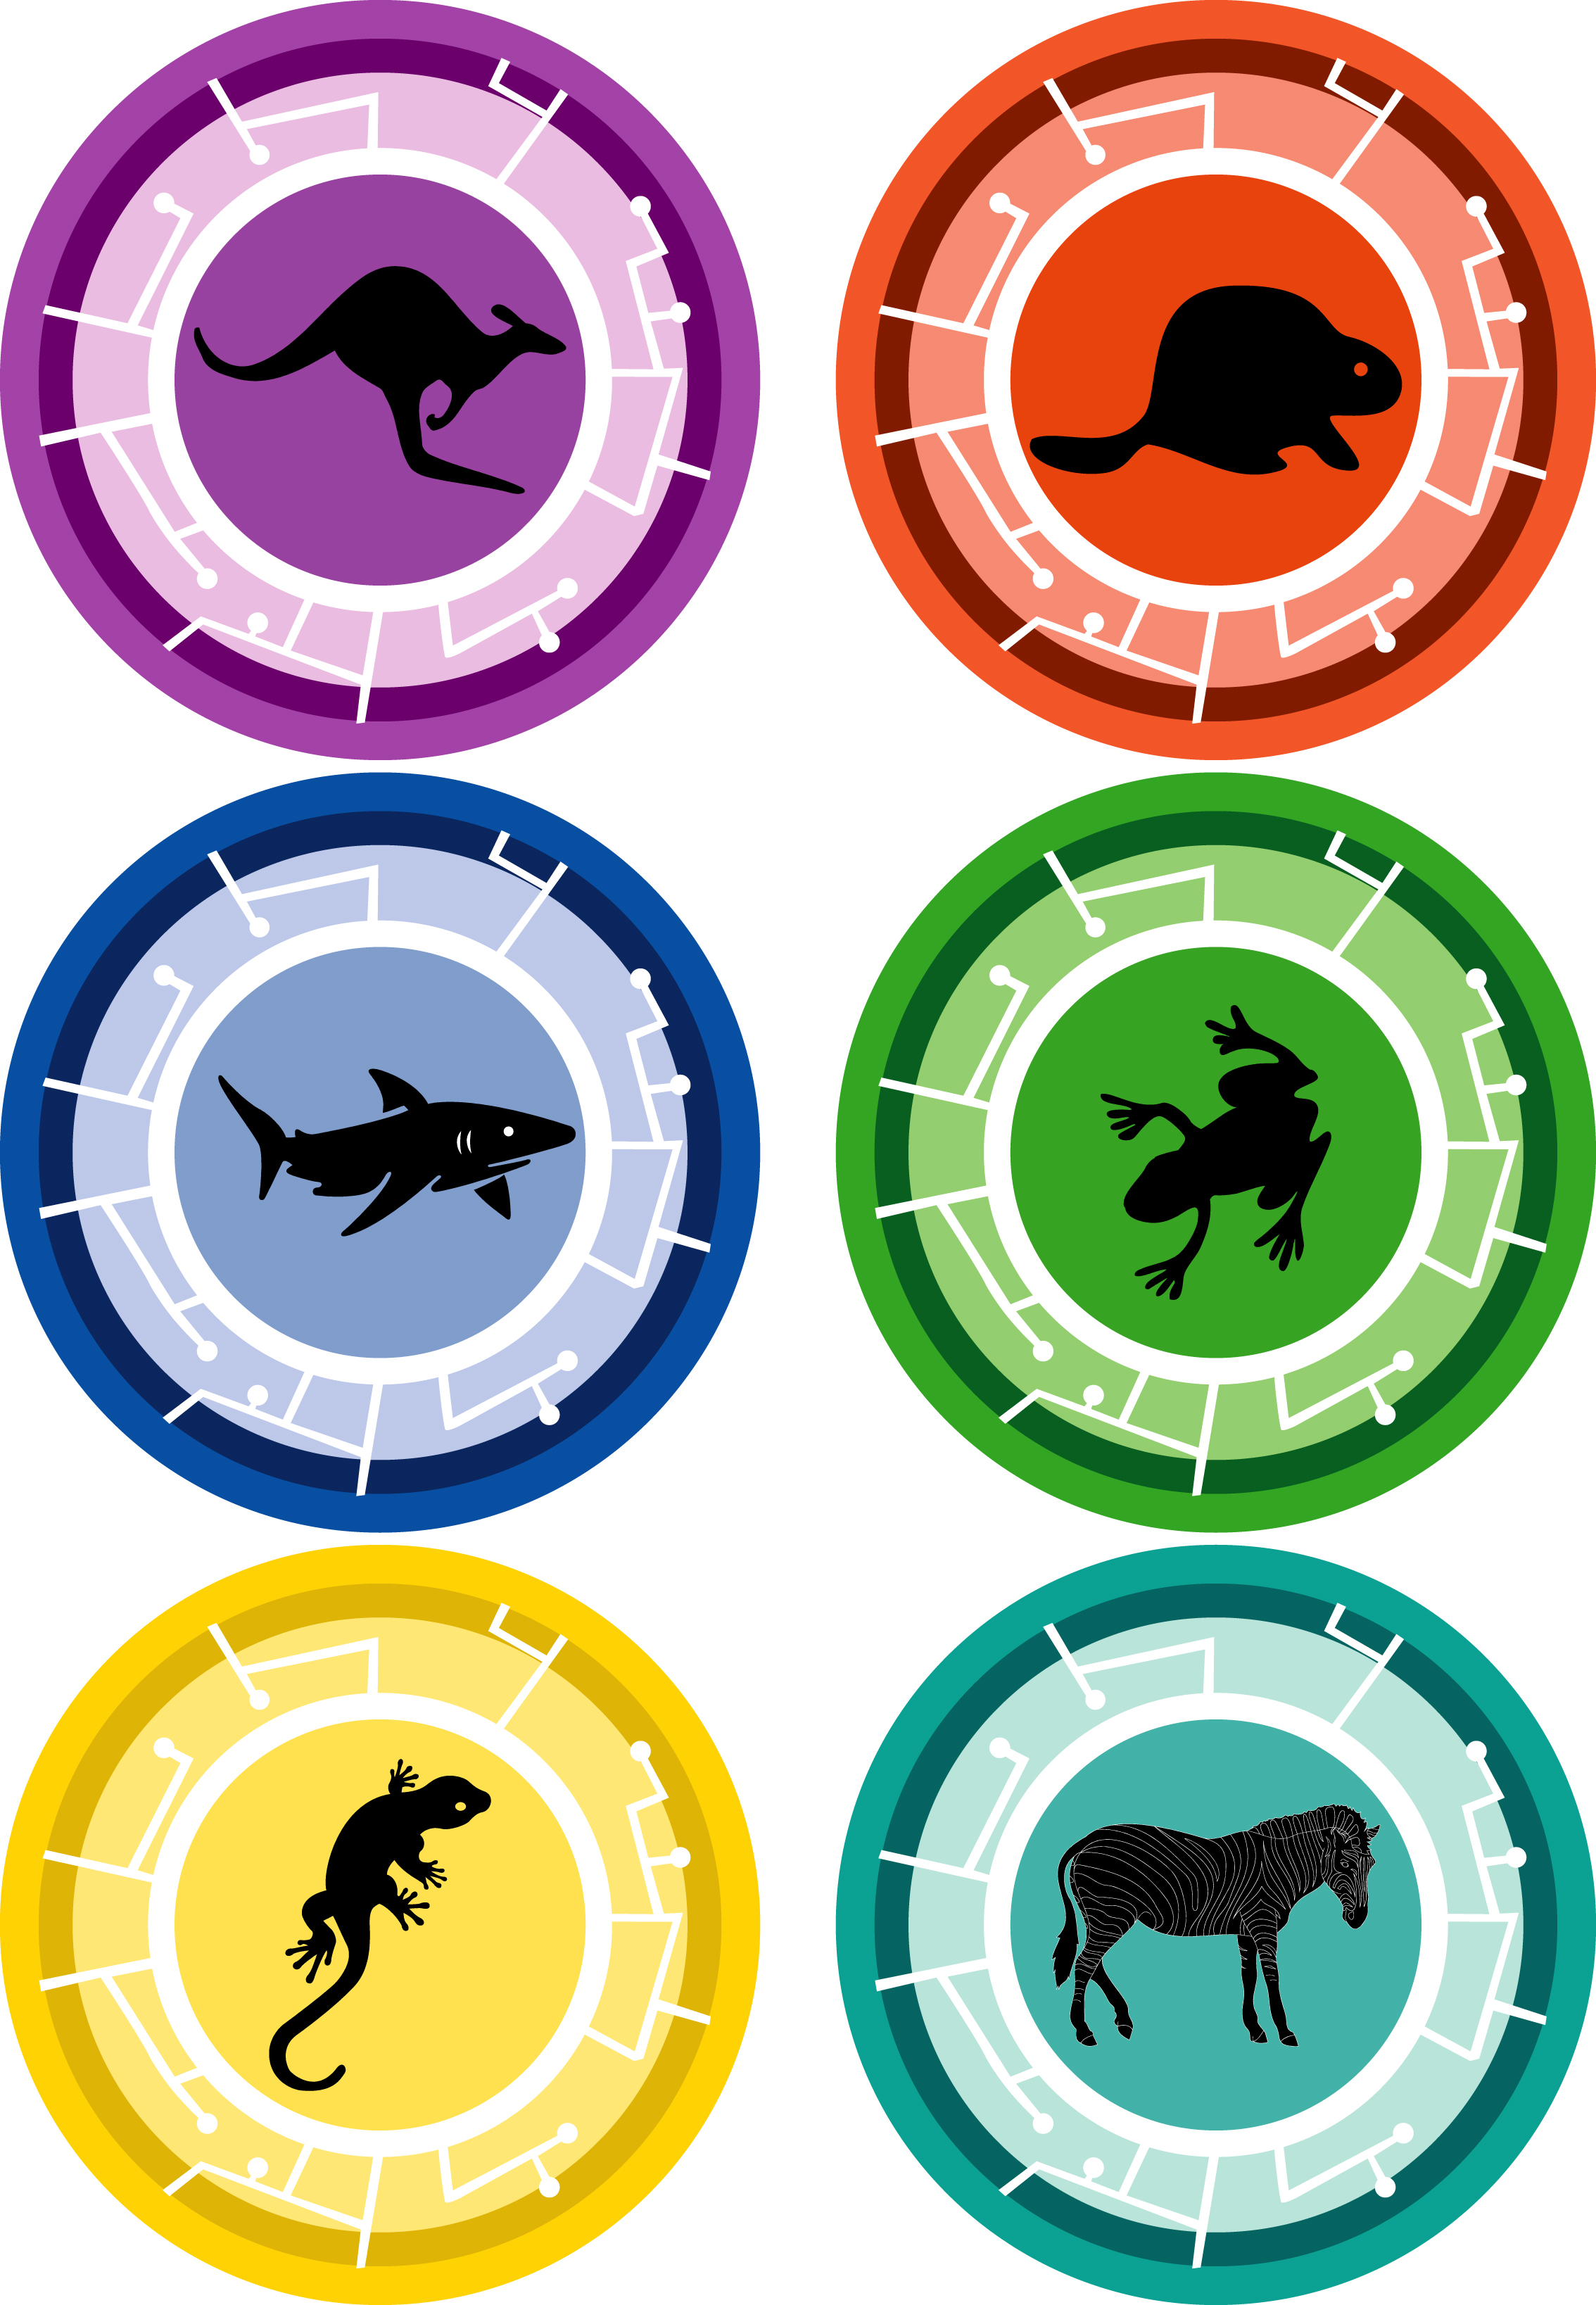 photo about Creature Power Discs Printable identify Wild Kratts Creature Energy Disks